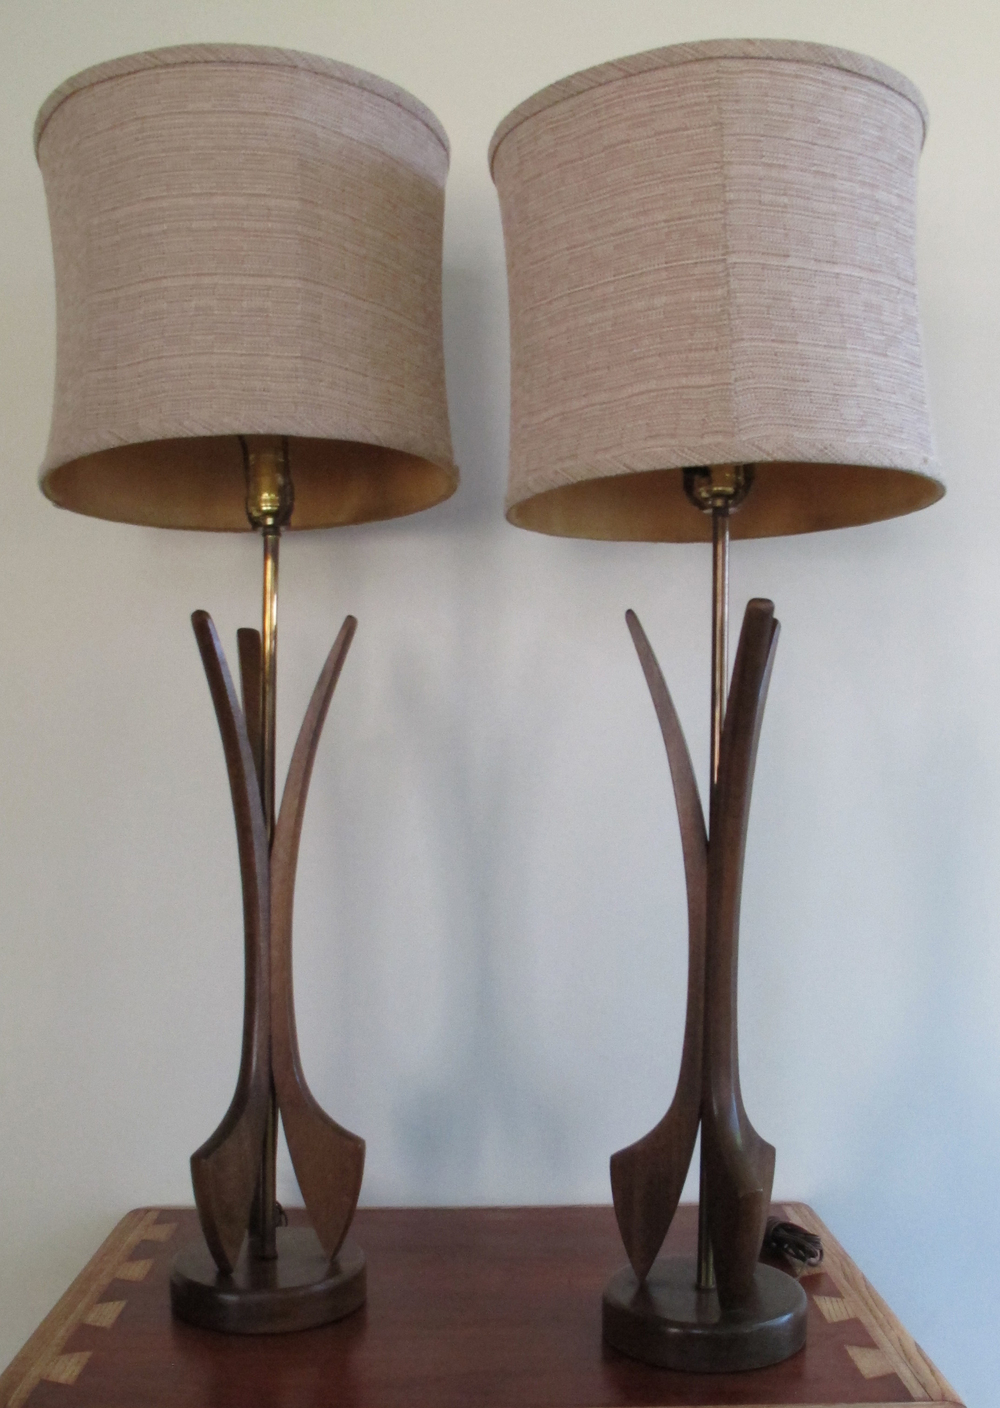 PAIR OF MID CENTURY SCULPTED WOOD LAMPS